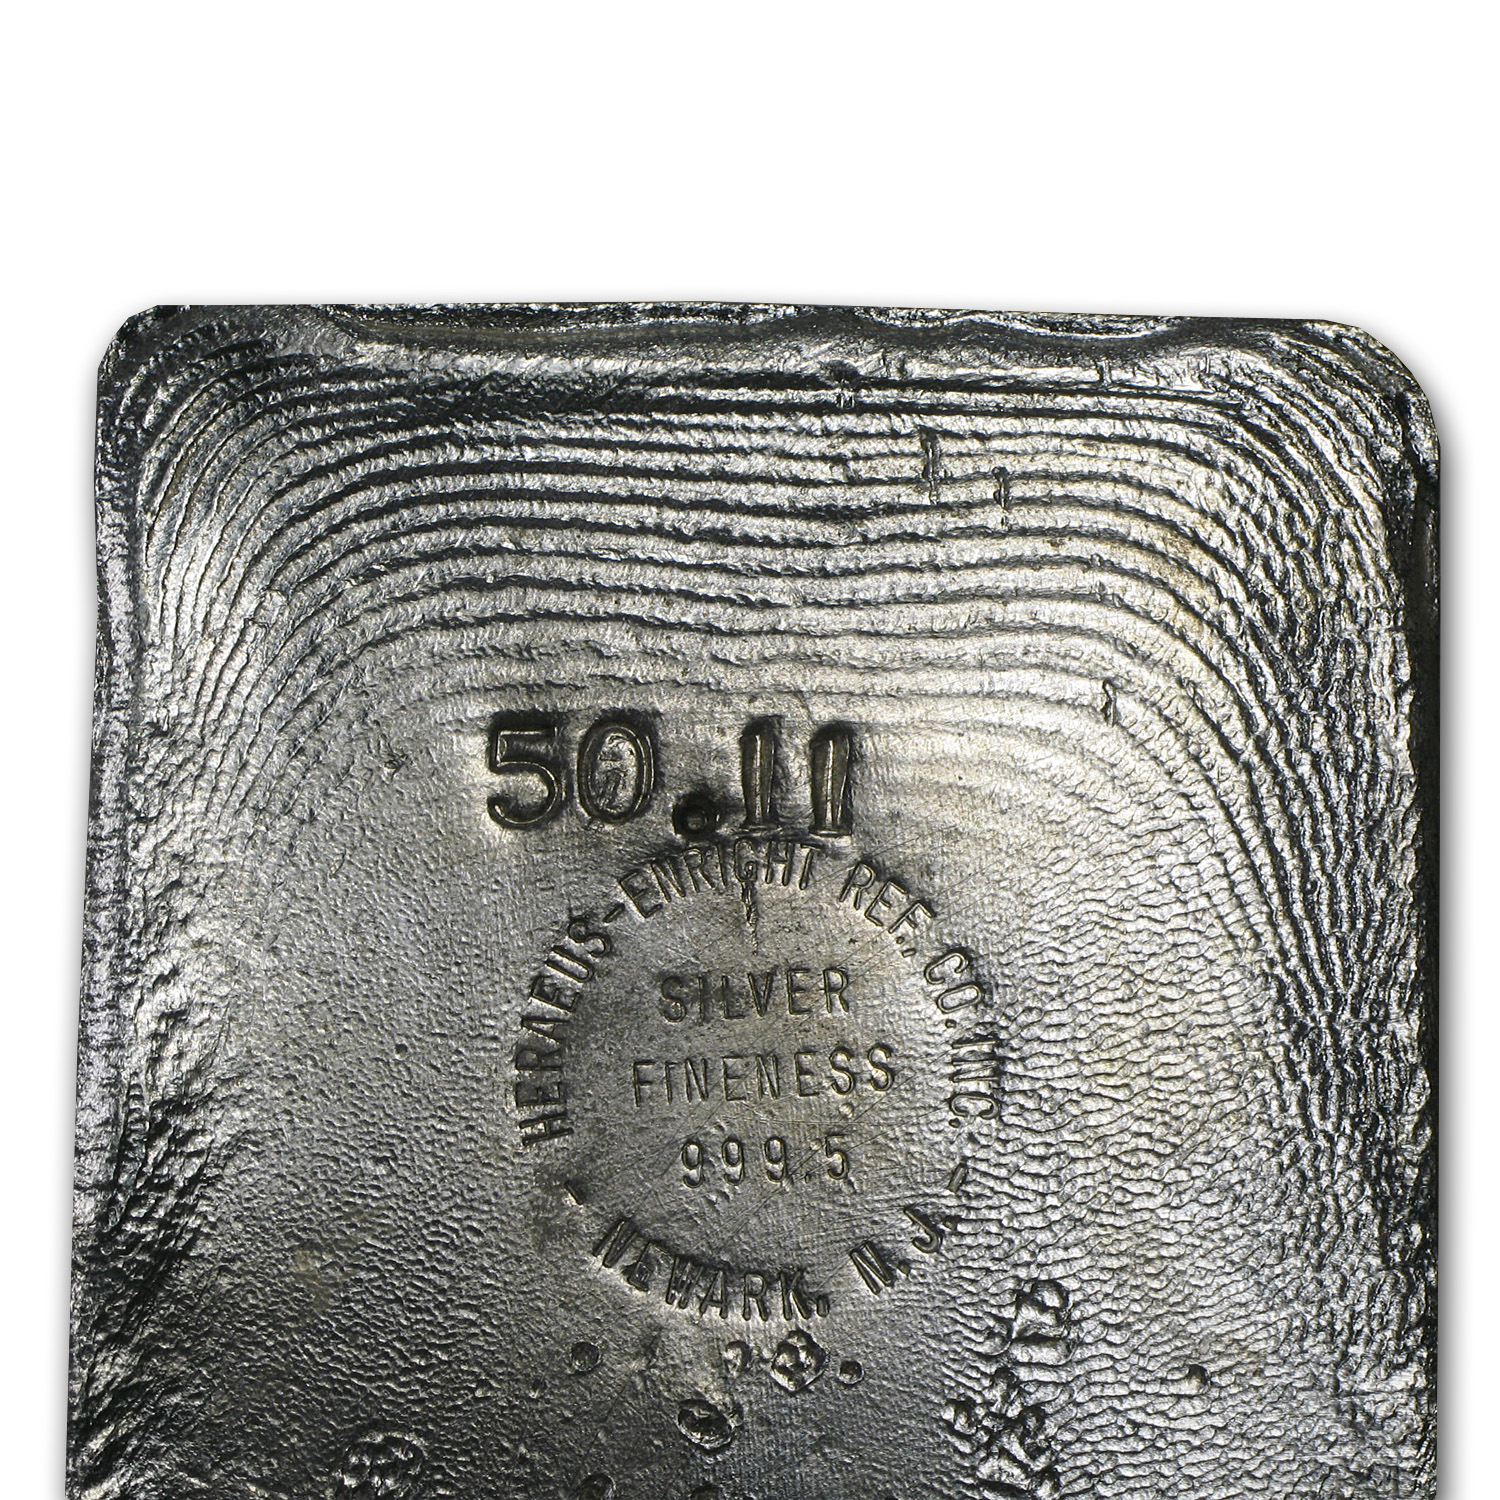 50.11 oz Silver Bars - Heraeus (Poured)